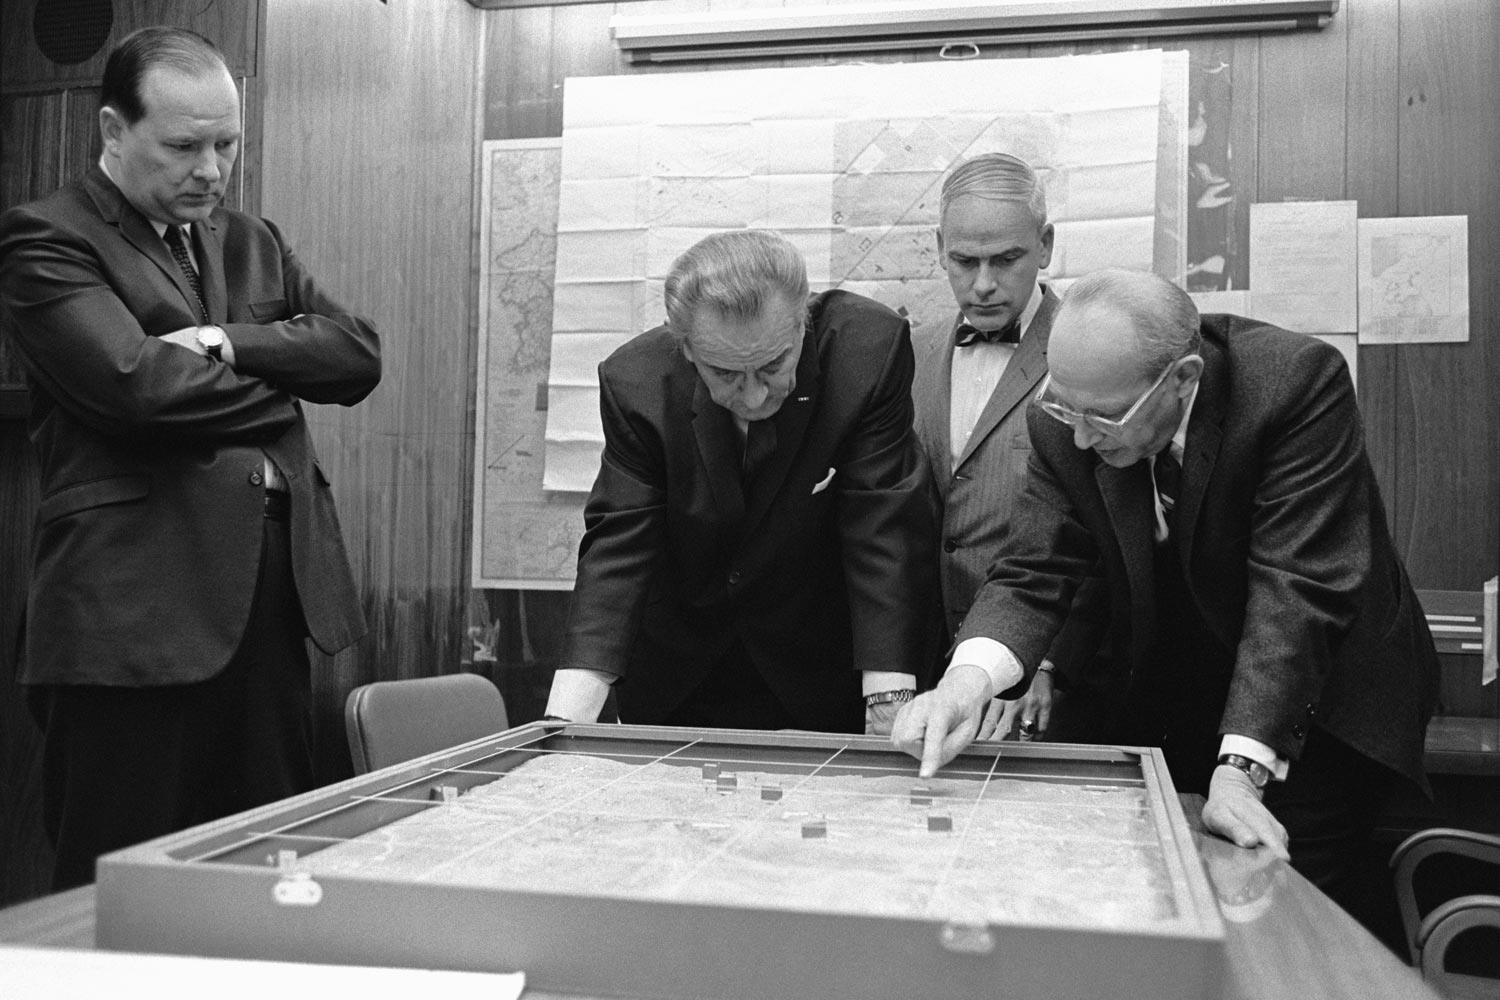 Special Assistant for National Security Affairs Walt Rostow shows President Lyndon Johnson a model of the Khe Sanh area on Feb. 15, 1968.